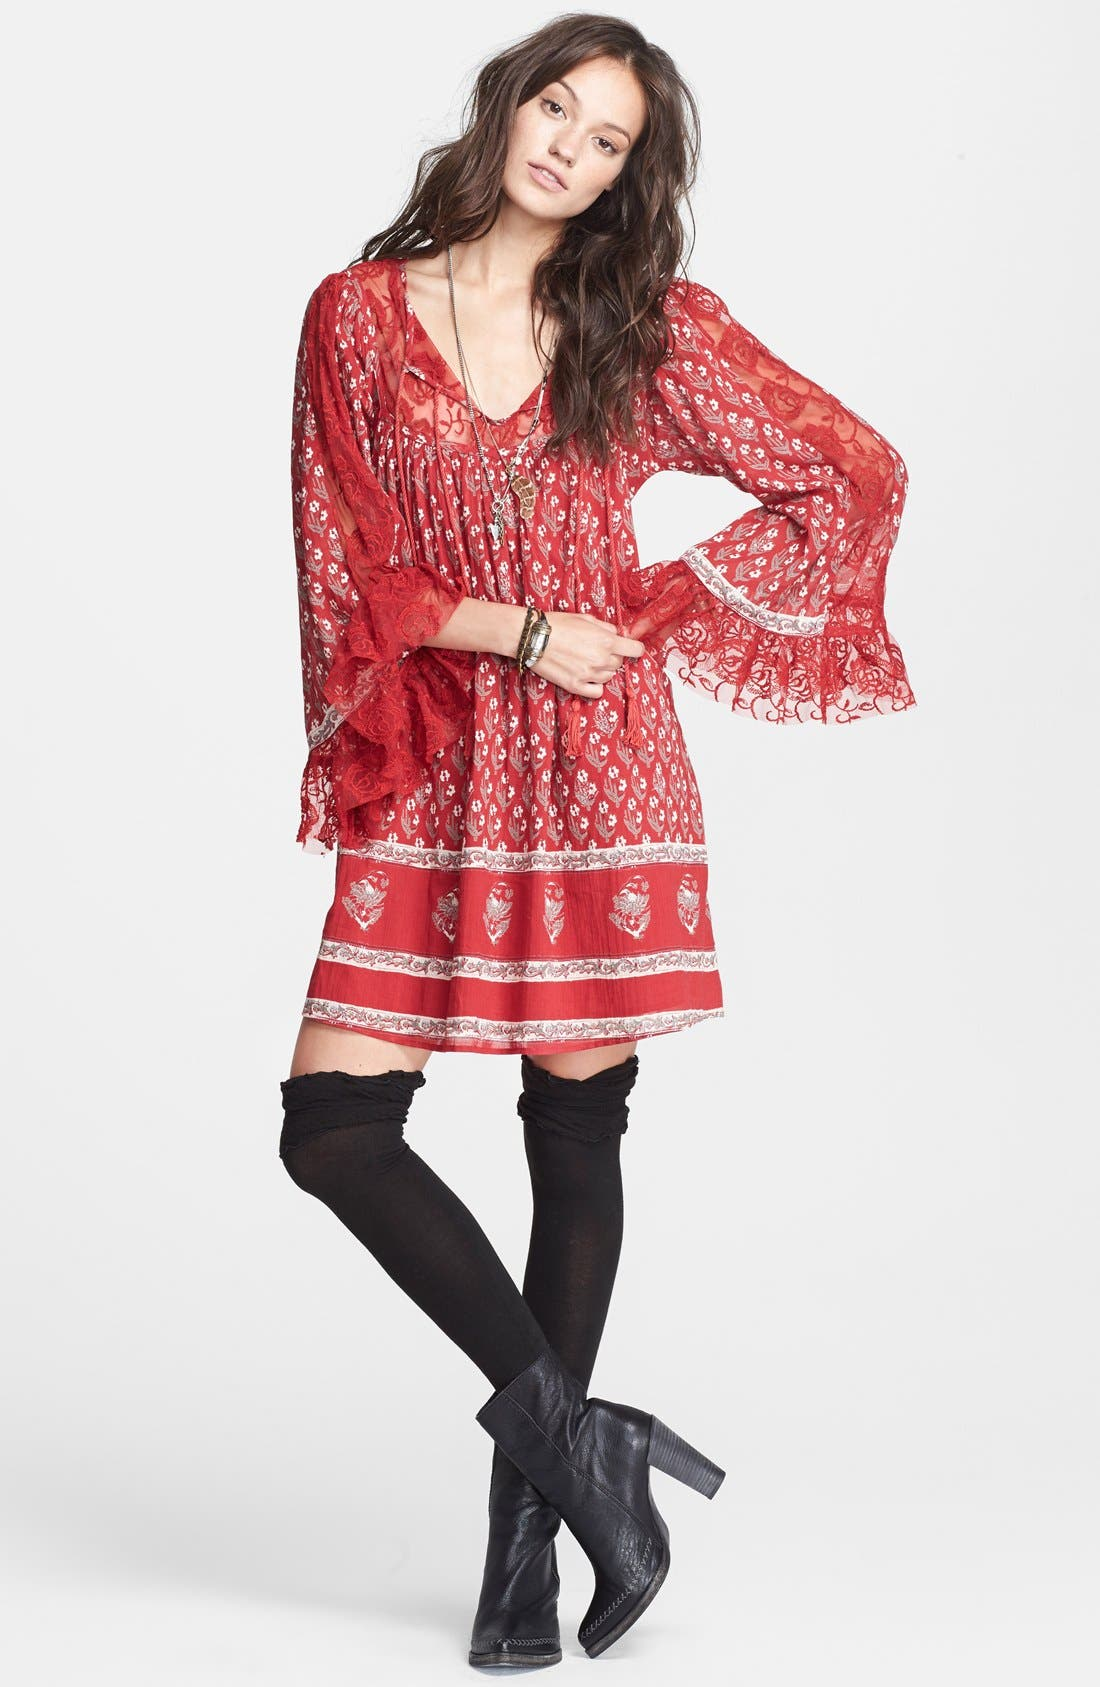 Alternate Image 1 Selected - Free People Floral Print Butterfly Sleeve Cotton Dress